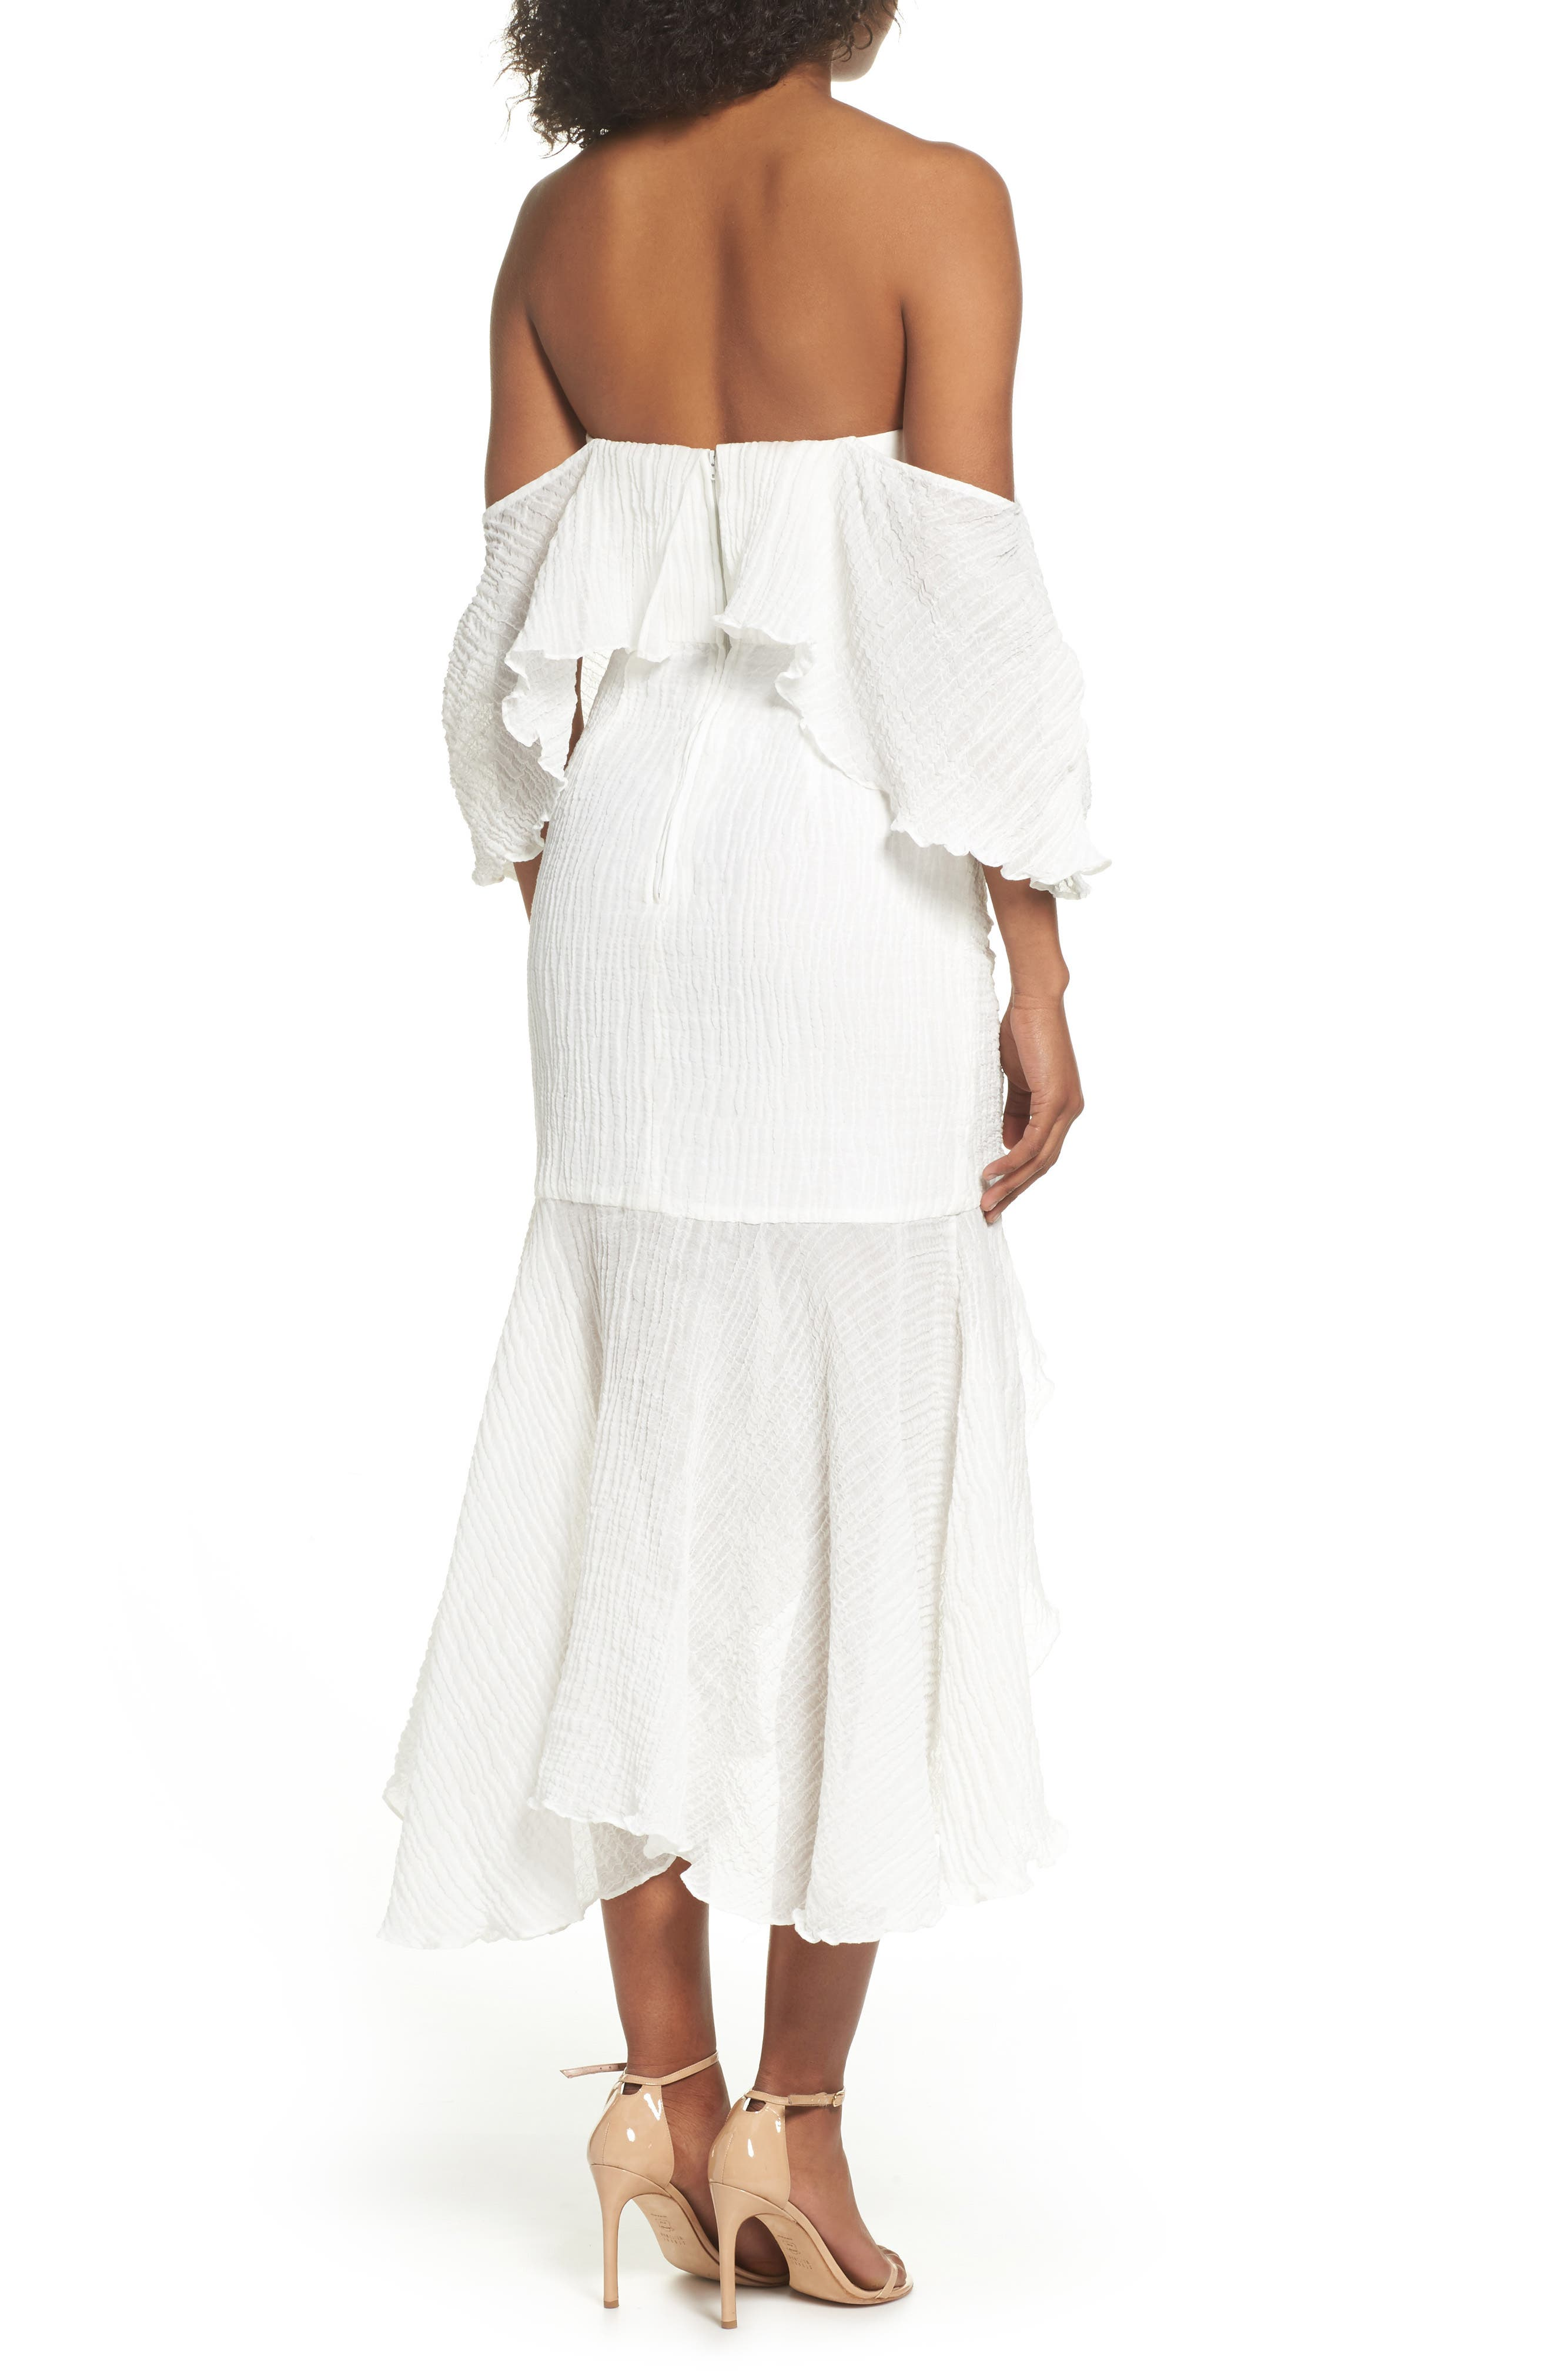 Sacrifices Ruched Off the Shoulder Dress,                             Alternate thumbnail 3, color,                             Ivory